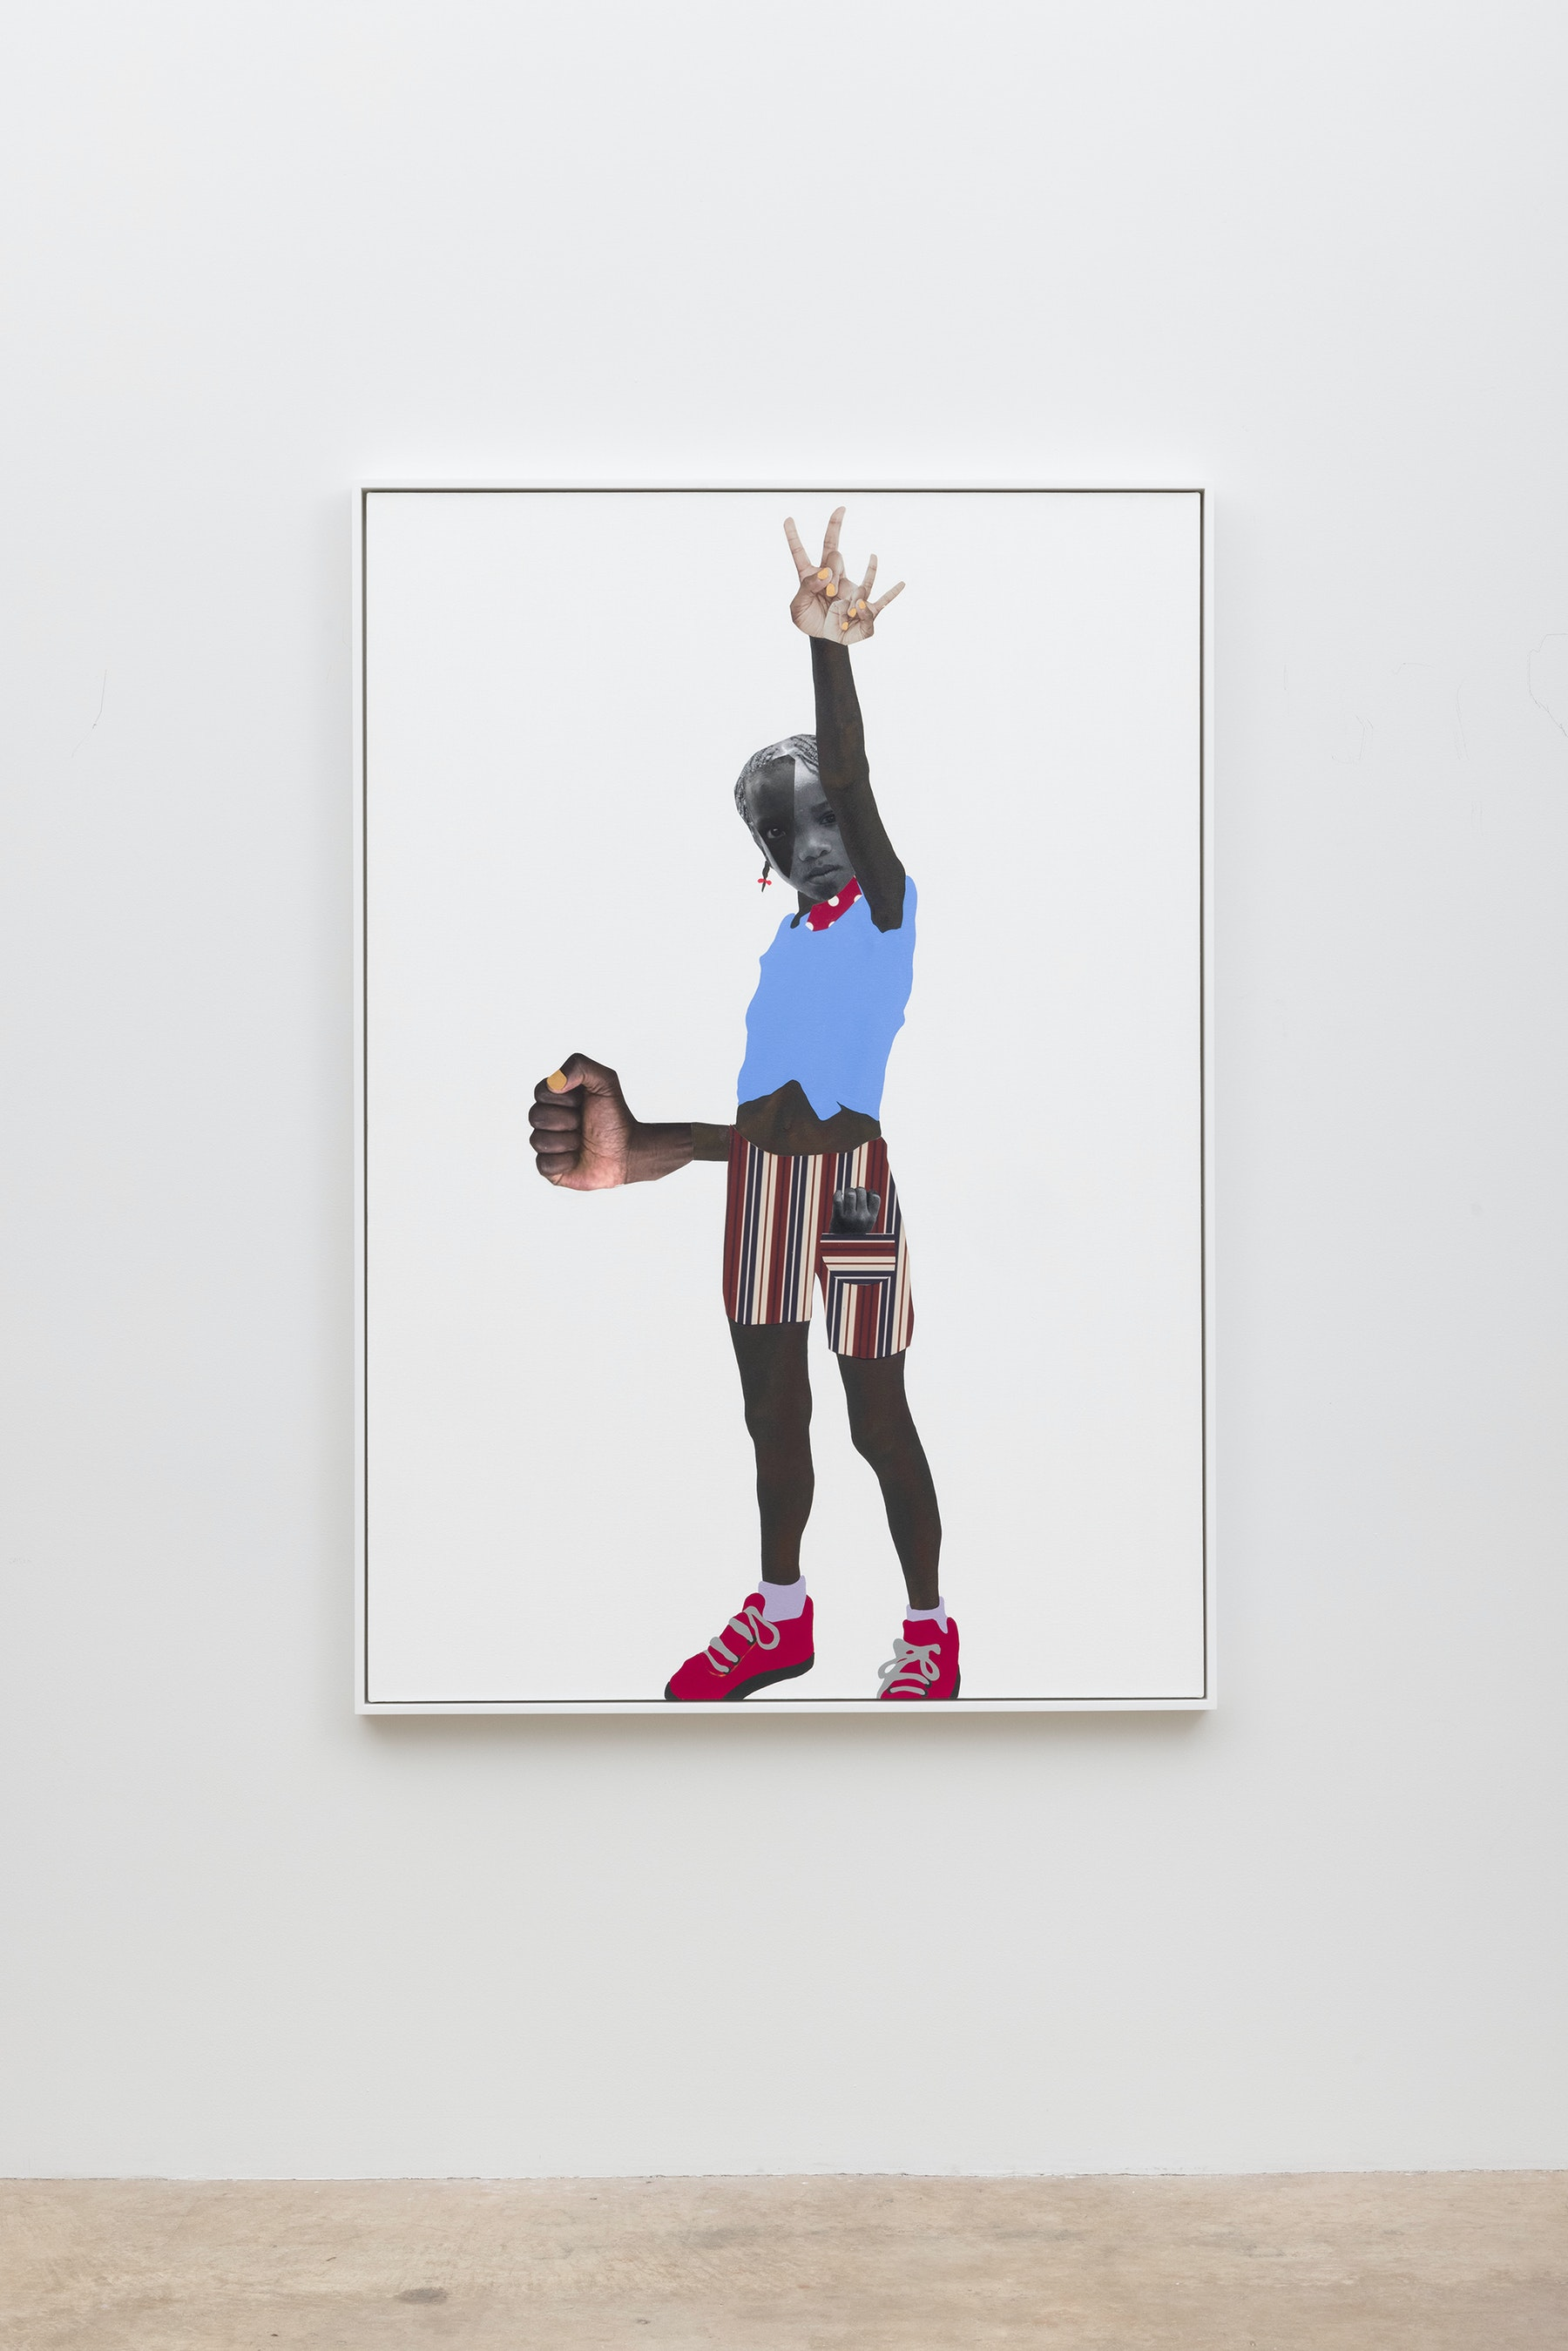 """Deborah Roberts """"Let's not give up,"""" 2020 Mixed media collage on canvas 65"""" x 45"""" [HxW] (165.1 x 114.3 cm); 66 ¹⁄₂"""" x 46 ¹⁄₂"""" x 2 ¹⁄₄"""" [HxWxD] (168.91 x 118.11 x 5.71 cm) framed Inventory #ROB458 Courtesy of the artist and Vielmetter Los Angeles Photo credit: Jeff McLane"""